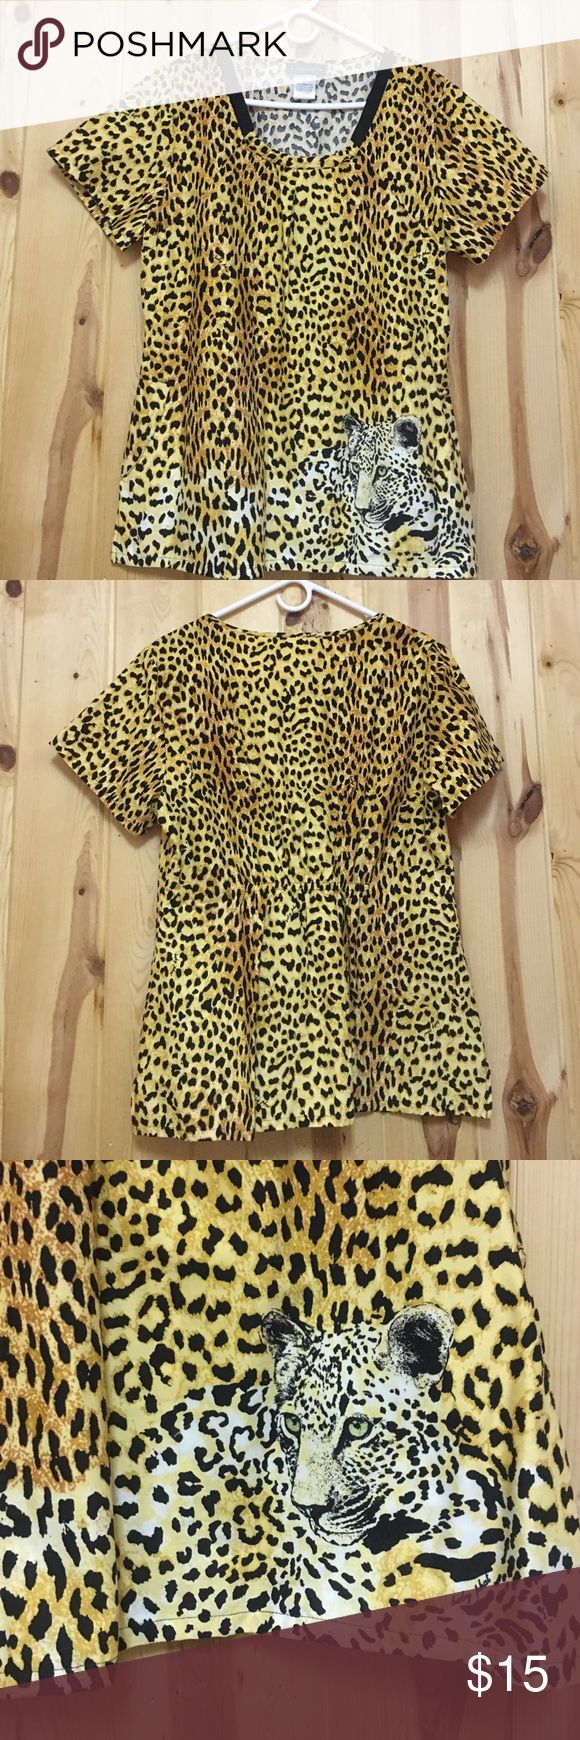 Baby Phat Scrub Top Large NWOT Baby Phat Scrub Top has two Side Pockets and Elastic in the back Print of Tiger on front left Baby Phat Tops